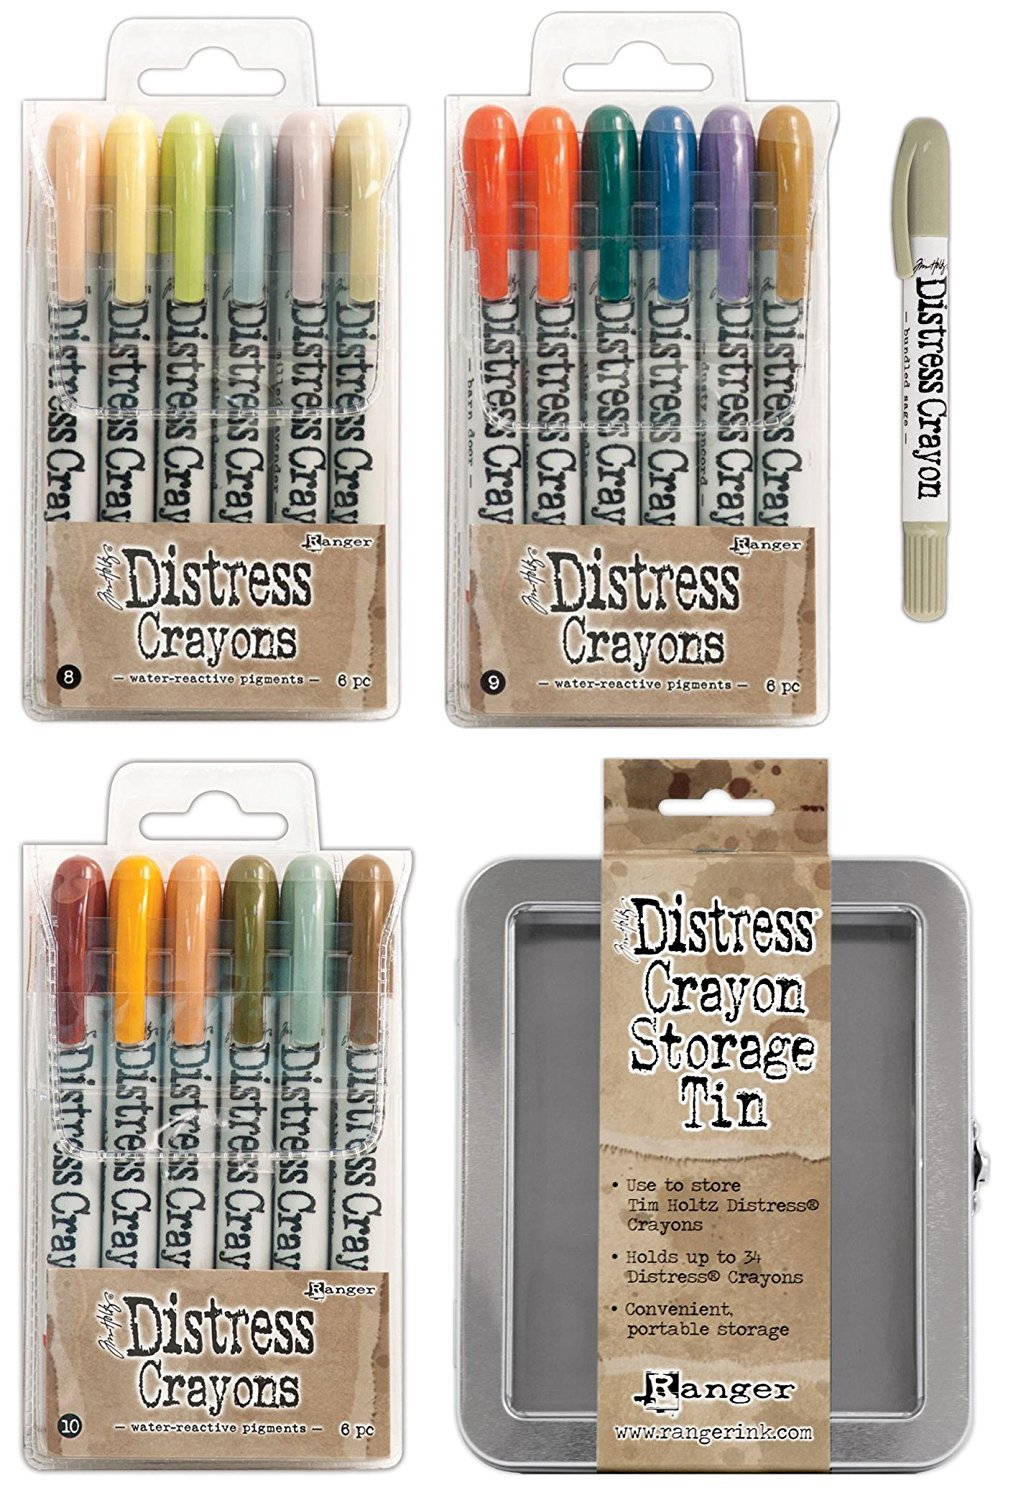 Tim Holtz Distress Crayon Kits 8, 9 and 10 with Storage Tin and Bundled Sage Crayon by Tim Holtz